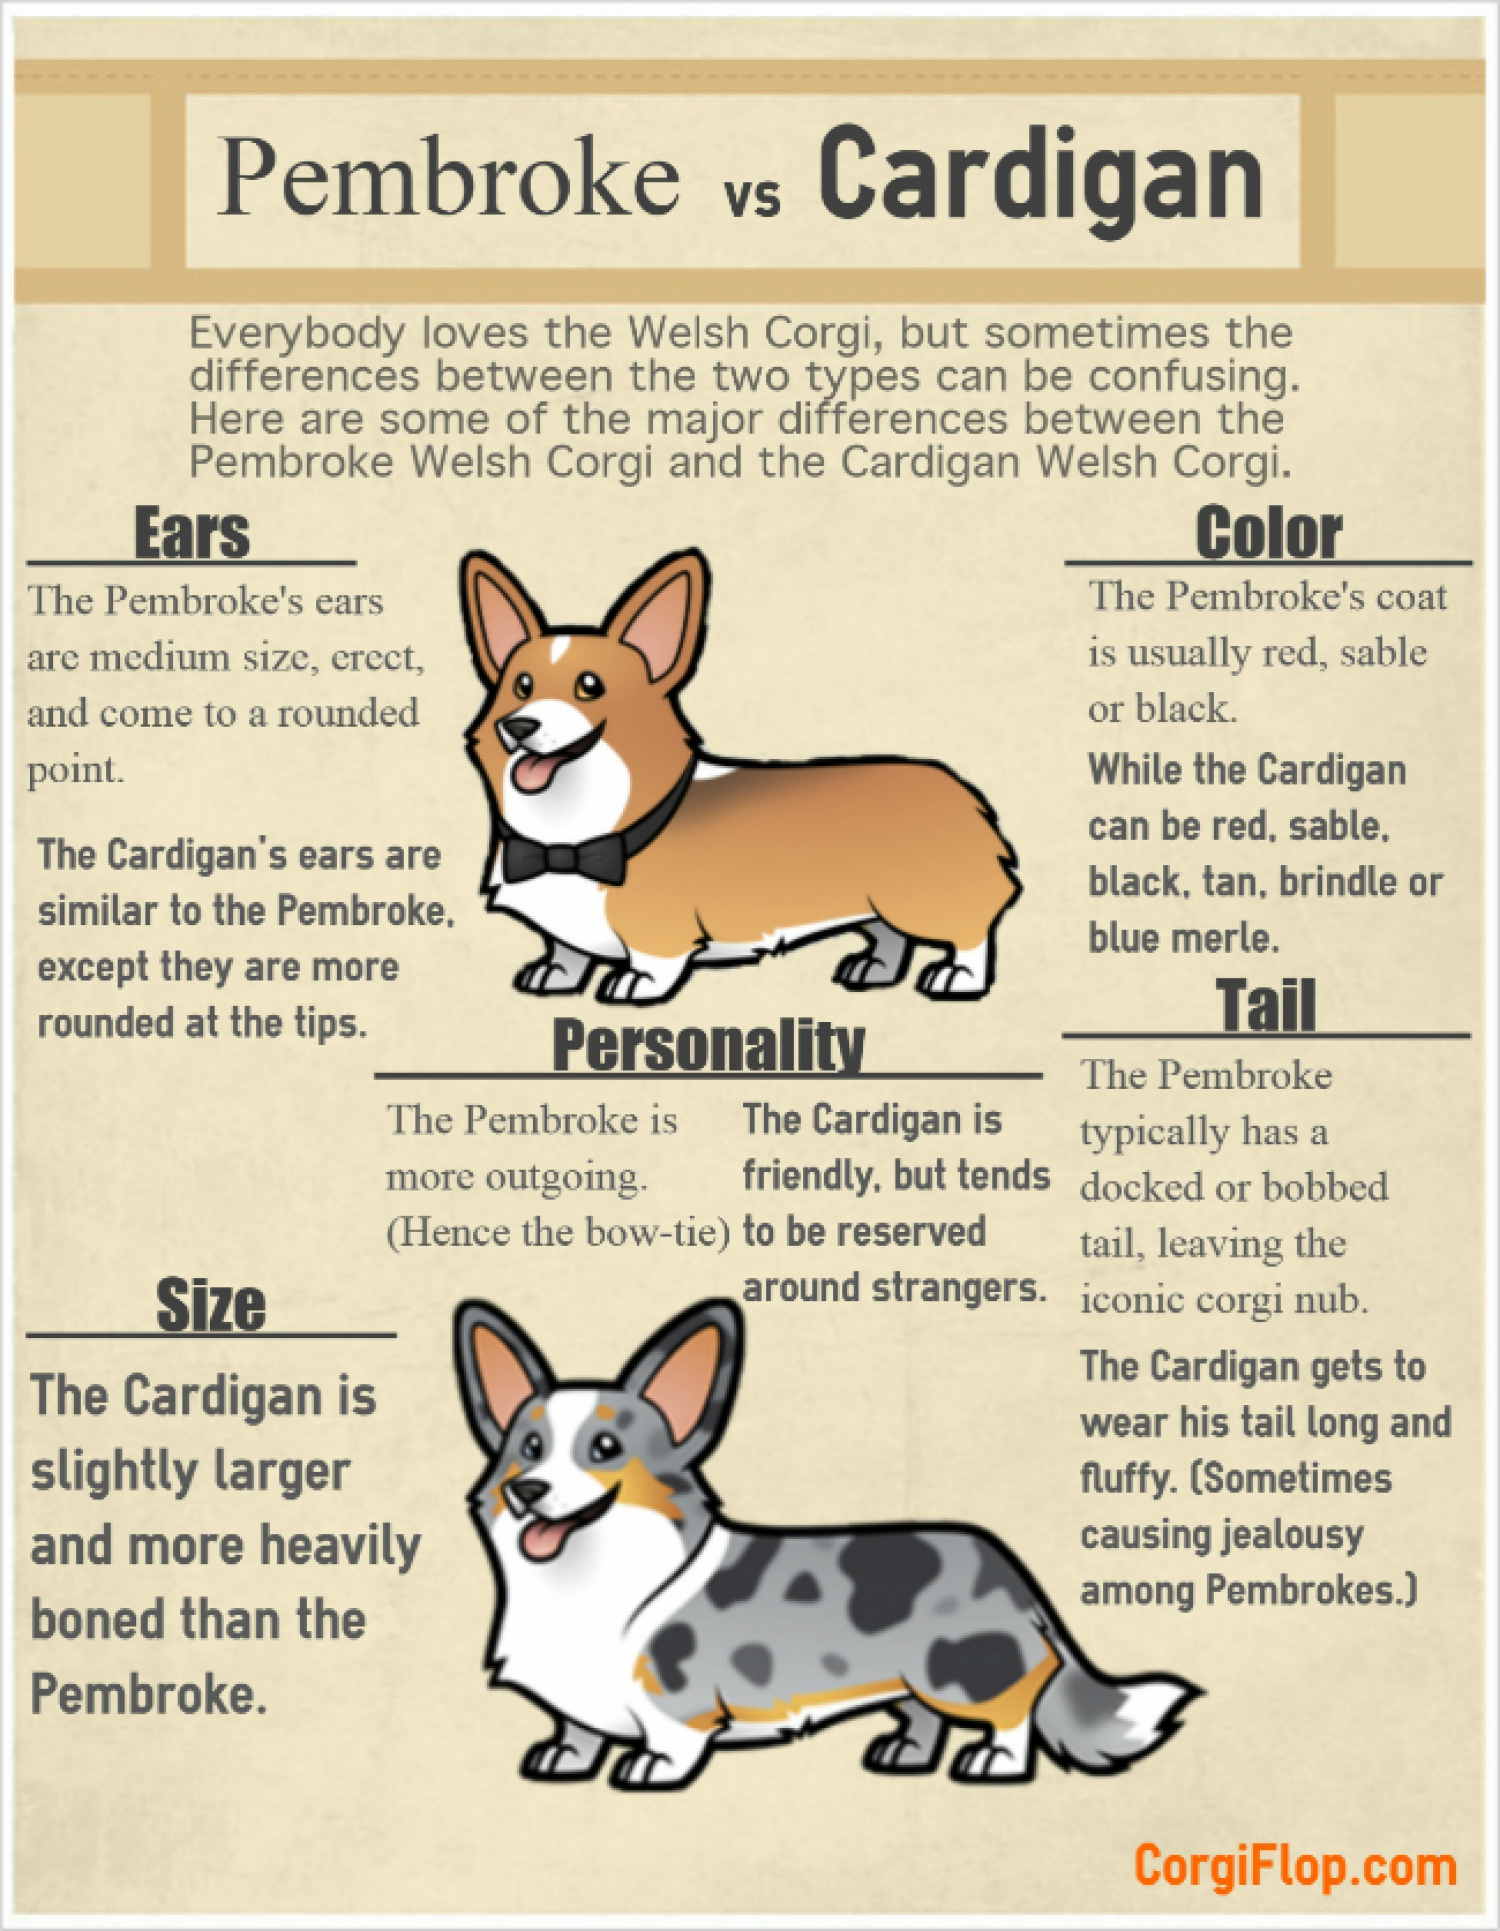 Pembroke vs Cardigan Infographic